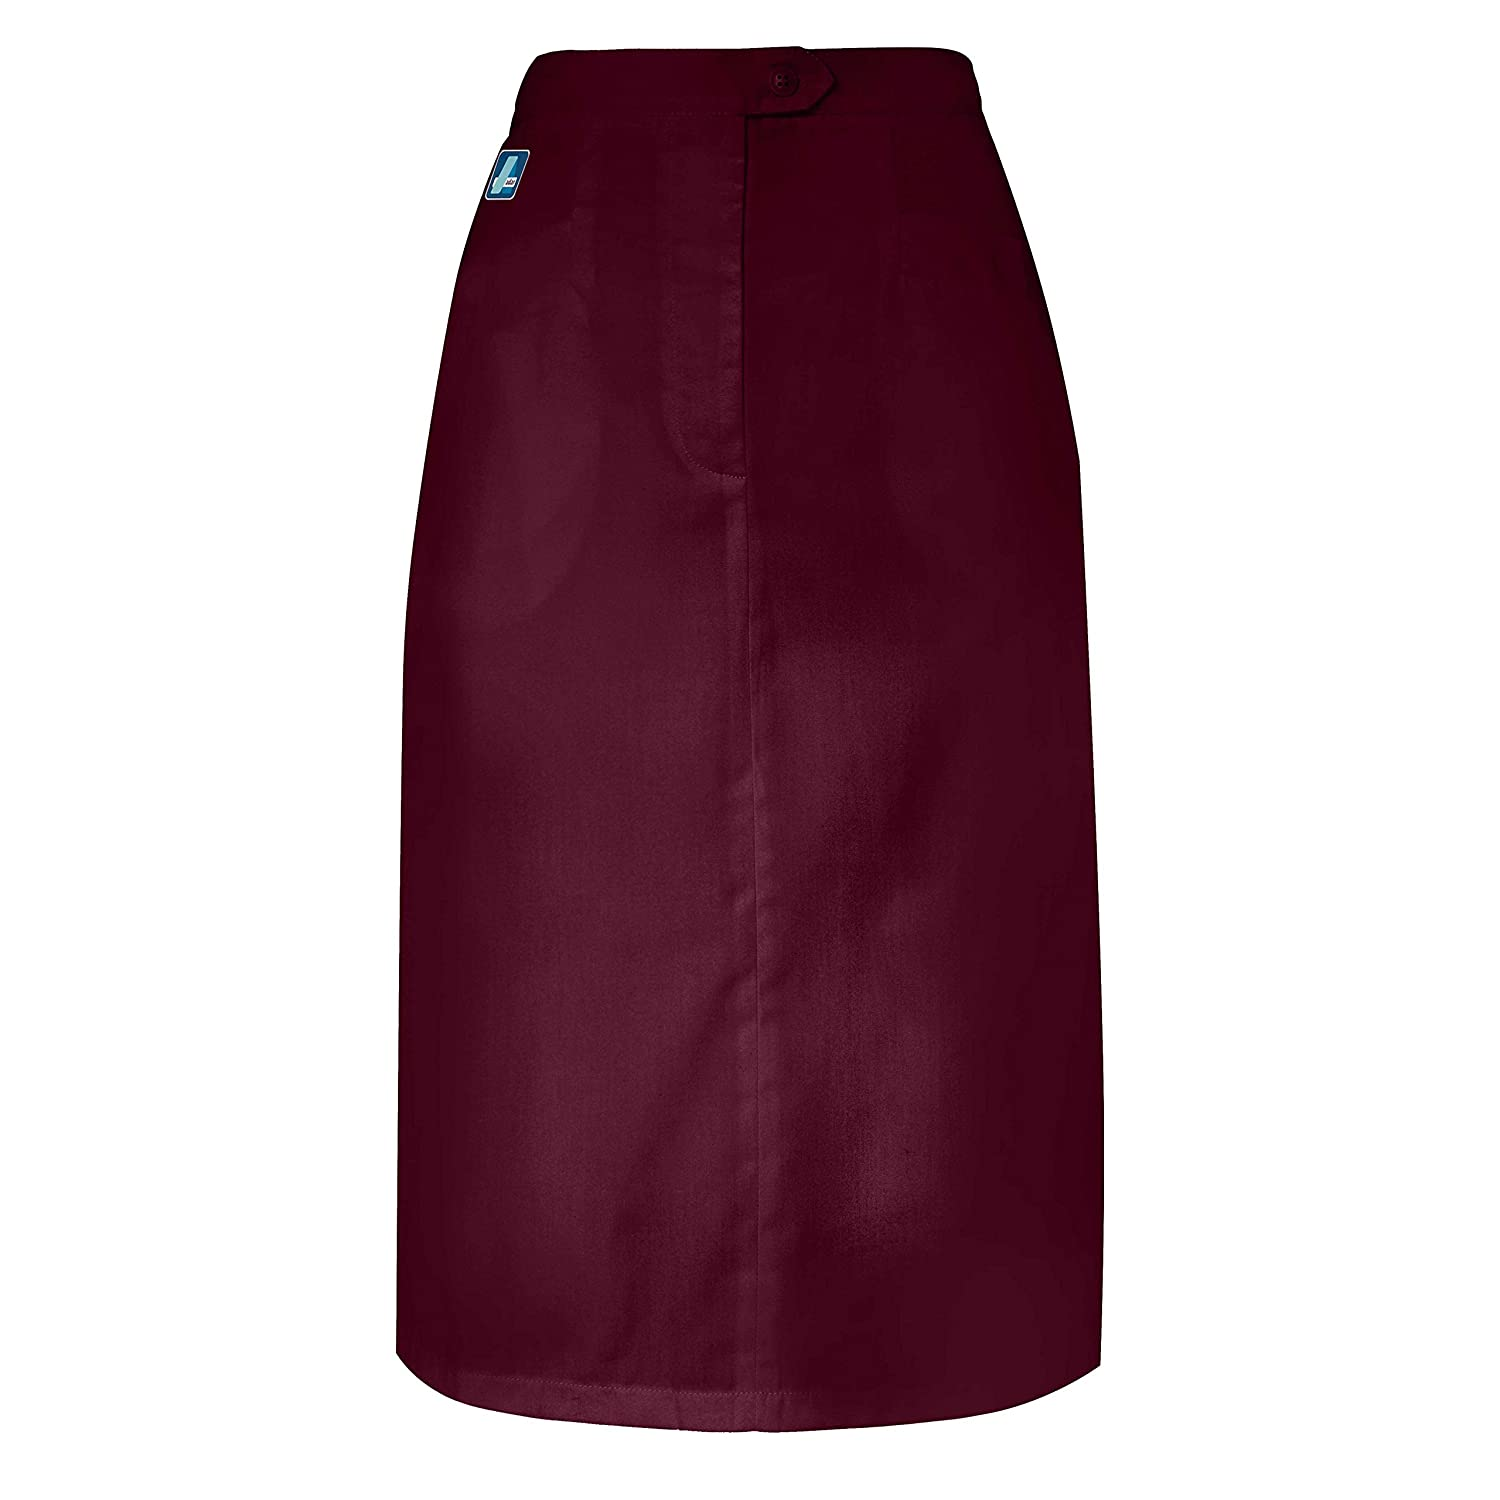 b7b7a01deee7 Adar Universal Mid-Calf Length Angle Pocket Skirt - 706 - BRG - 6 at Amazon  Women's Clothing store: